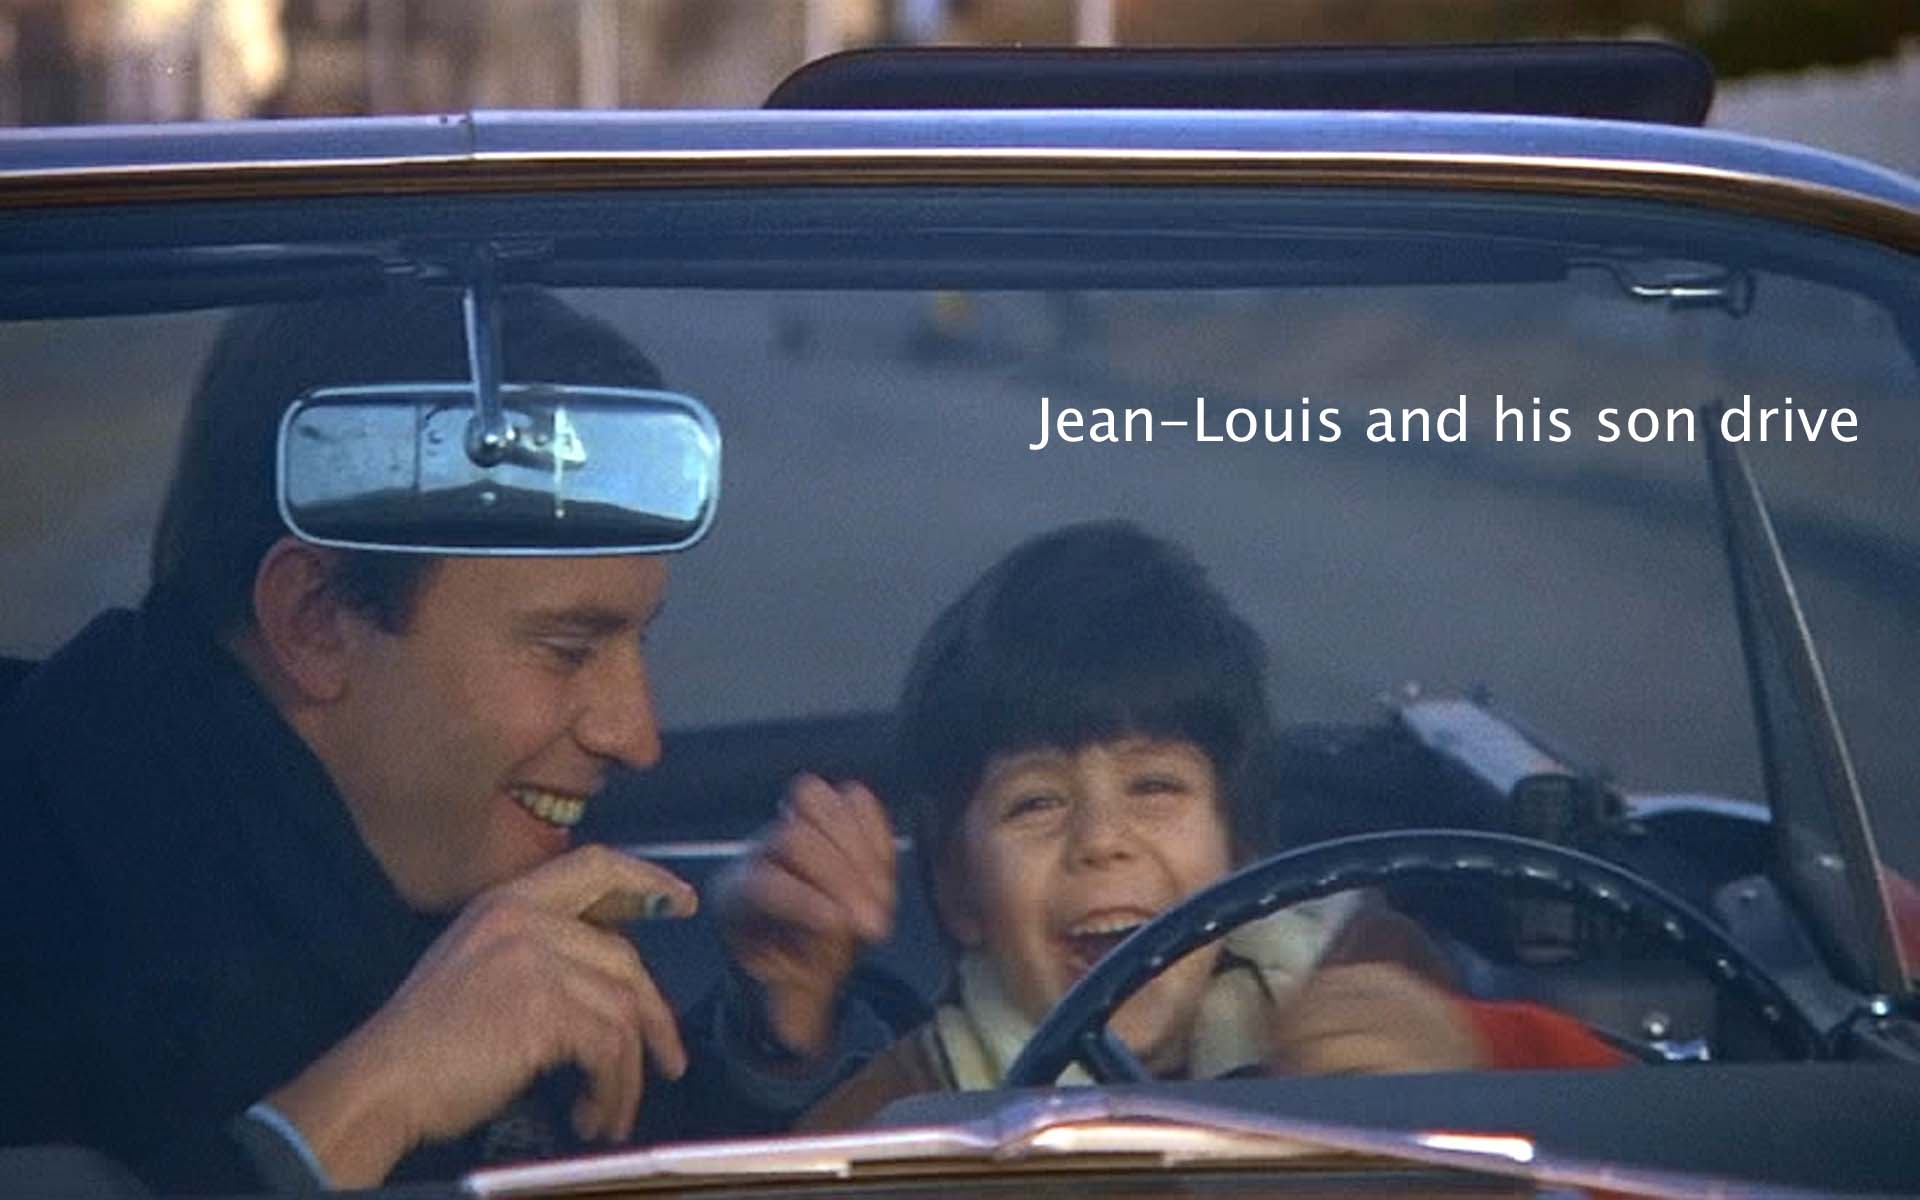 Jean-Louis and his son drive